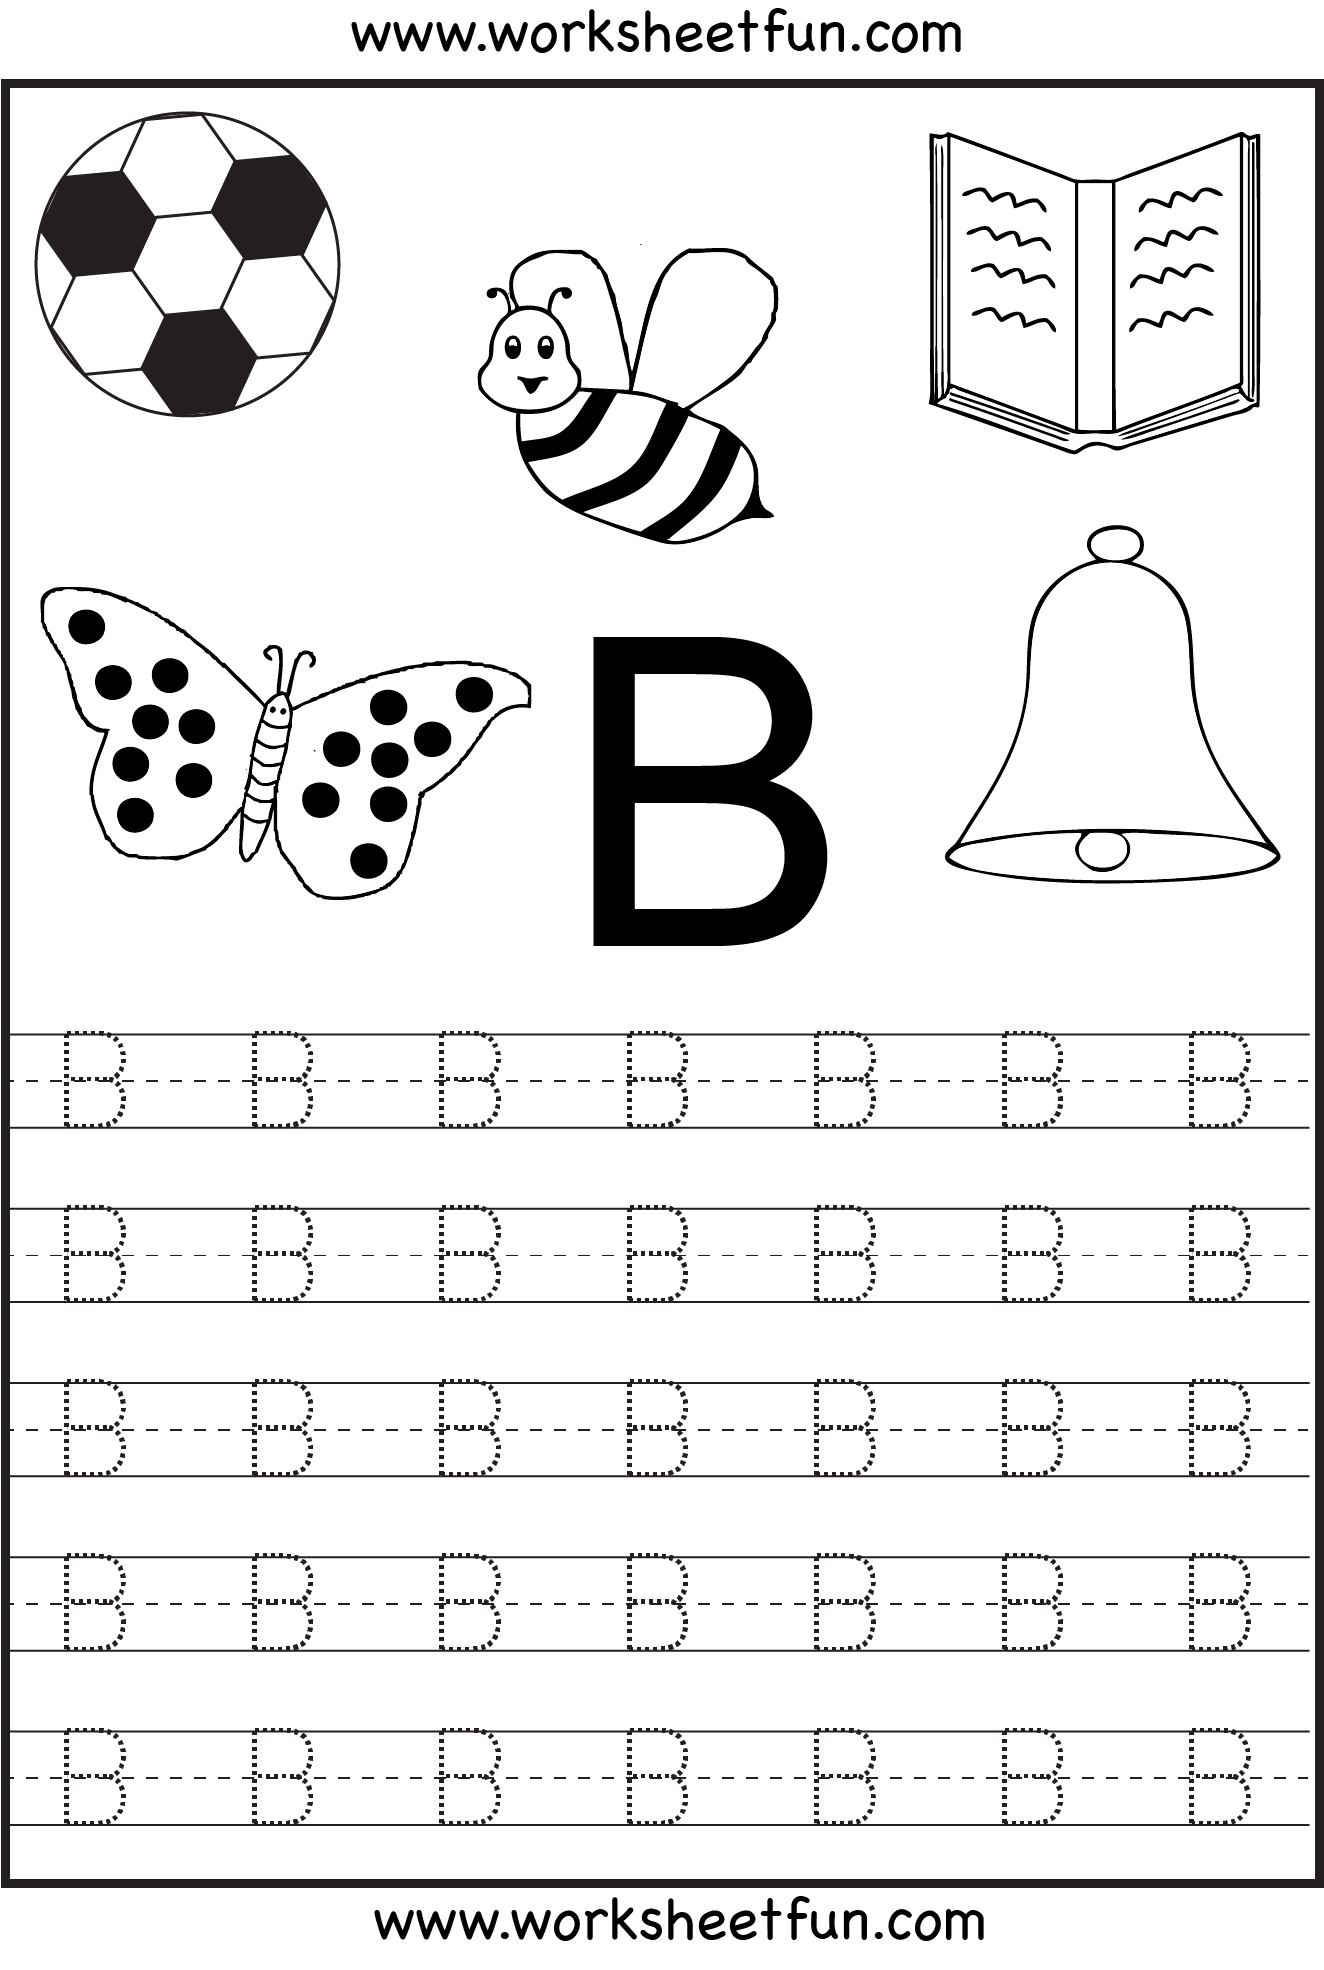 Worksheet Tracing The Alphabet Worksheets For Kindergarten action preschool alphabet and on pinterest free printable letter tracing worksheets for kindergarten 26 worksheets